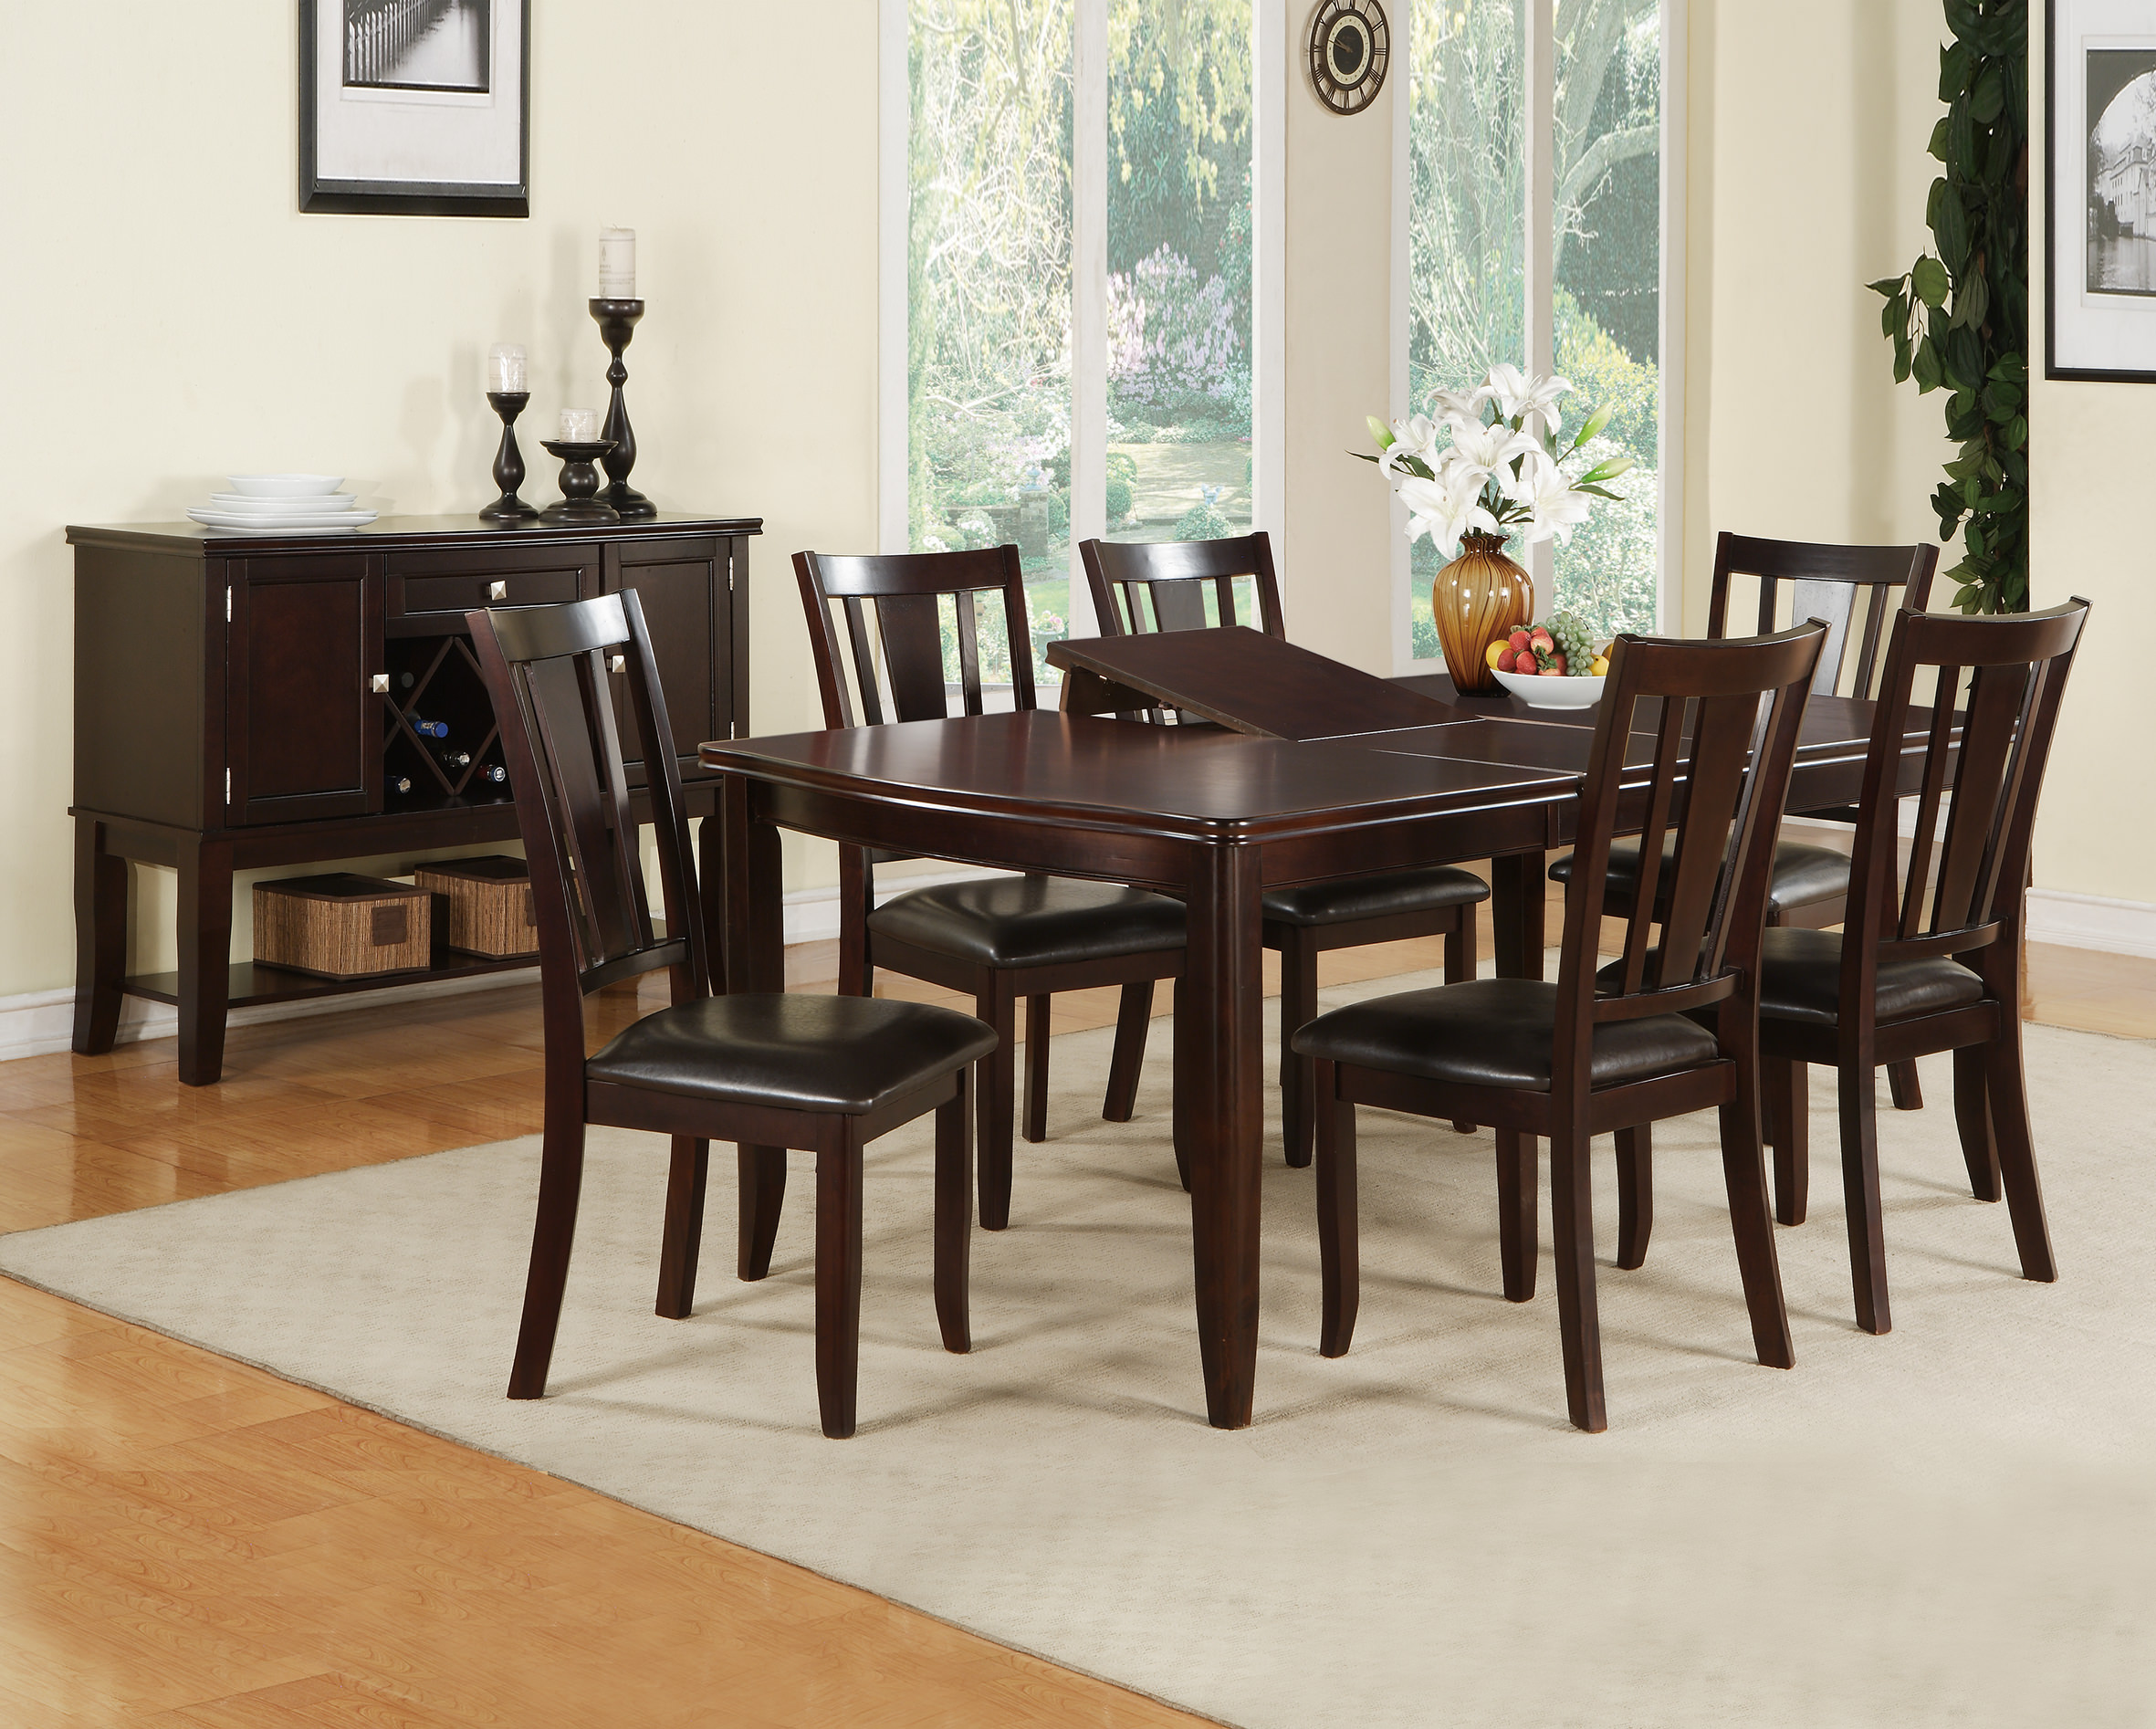 Superbe F2179/F1285 Dark Rosy Espresso 7 Pcs Dining Set By Poundex (Poundex  Associates Corporation